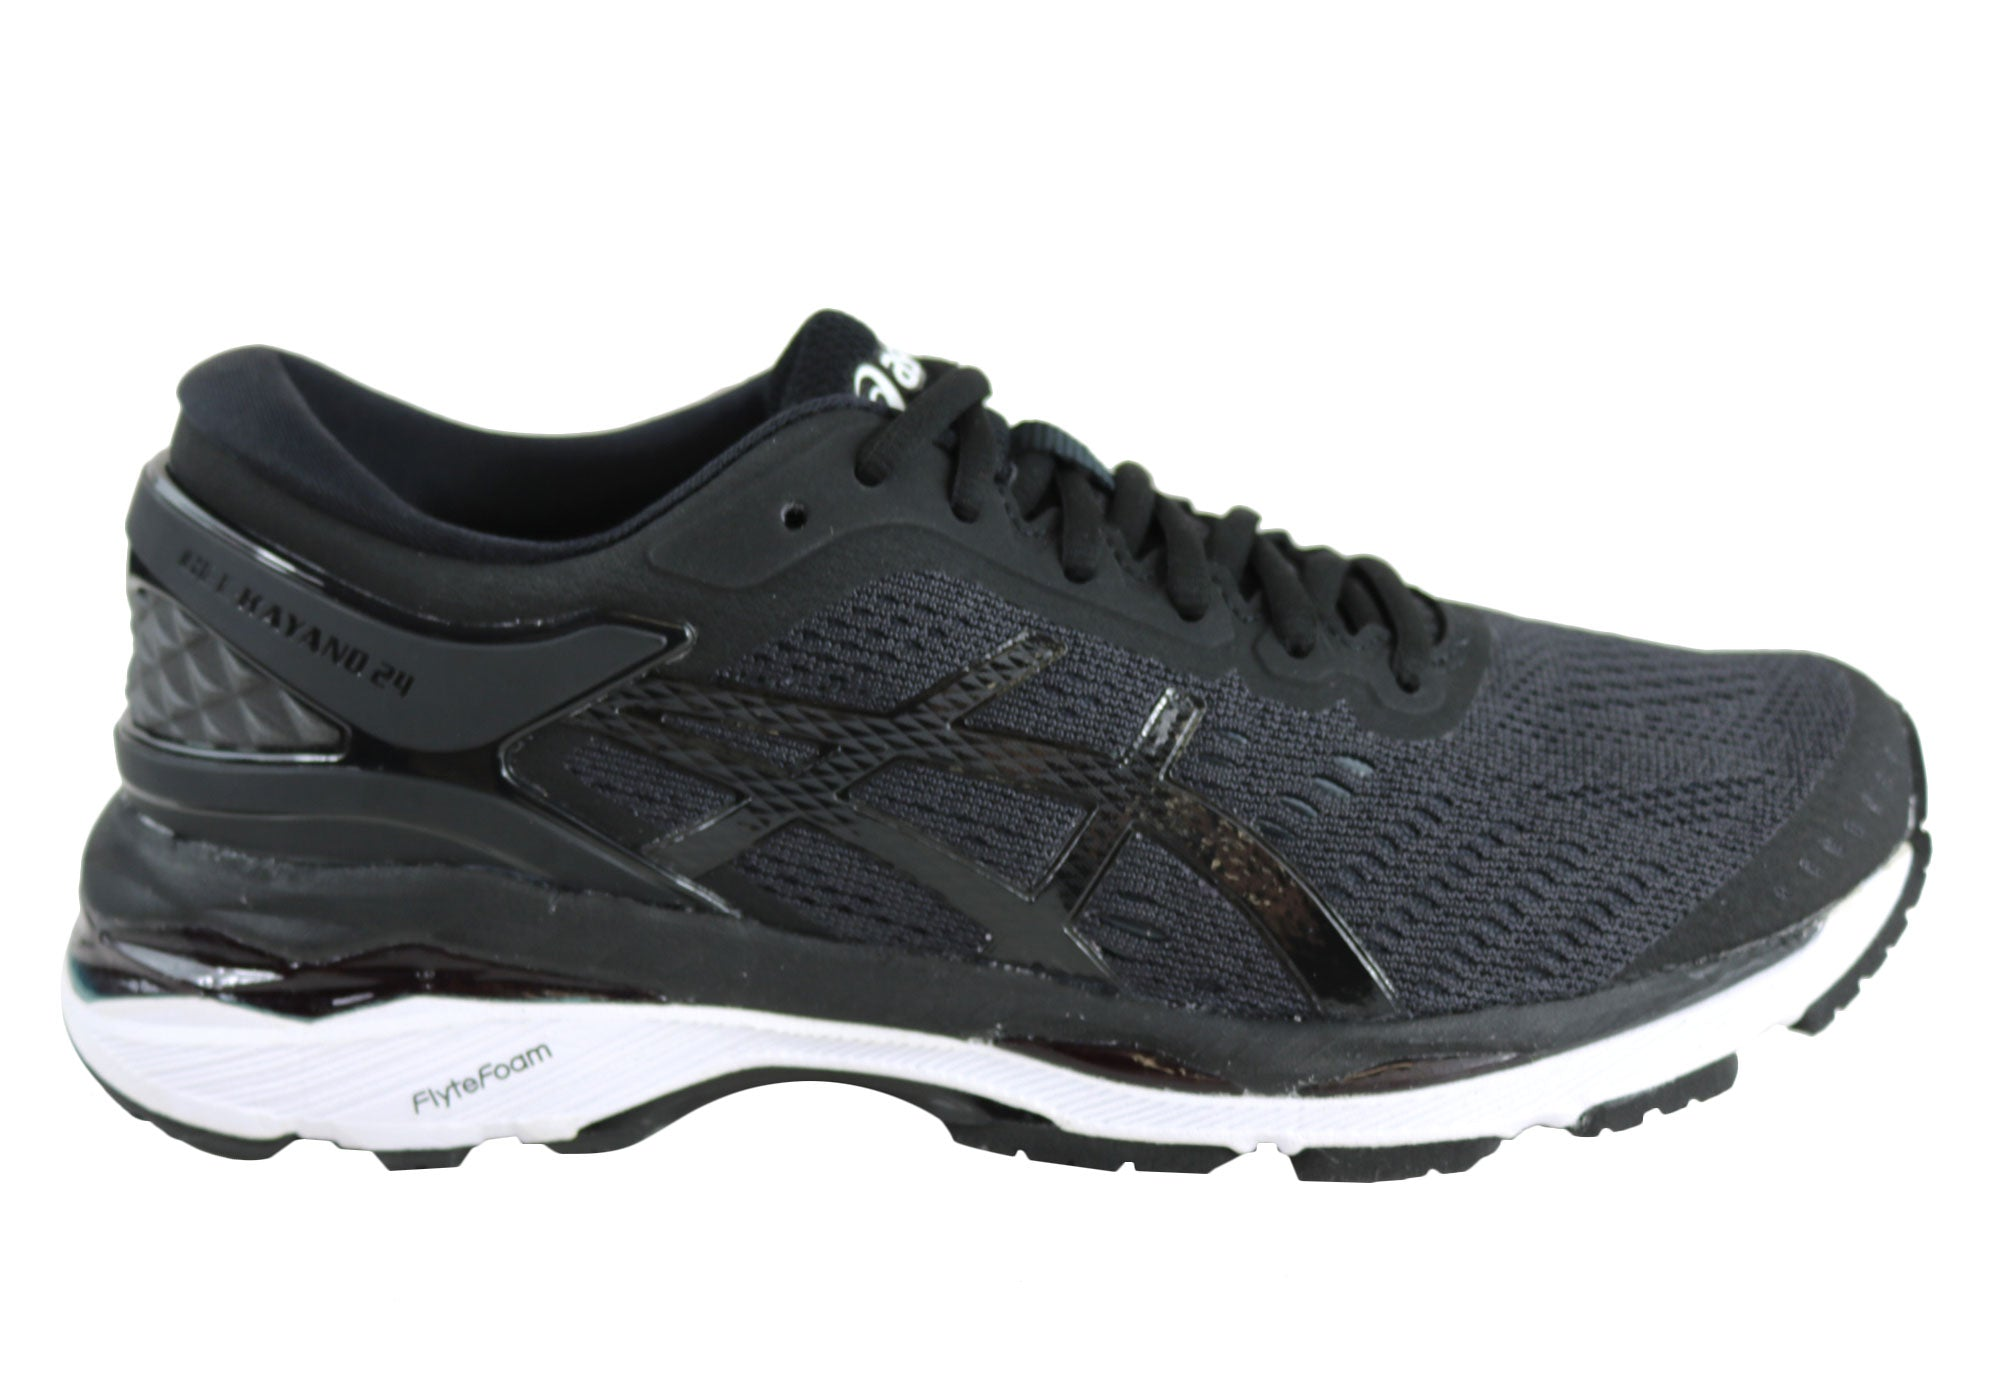 82ae79268f Details about Asics Gel-Kayano 24 Womens Premium Cushioned Running Sport  Shoes